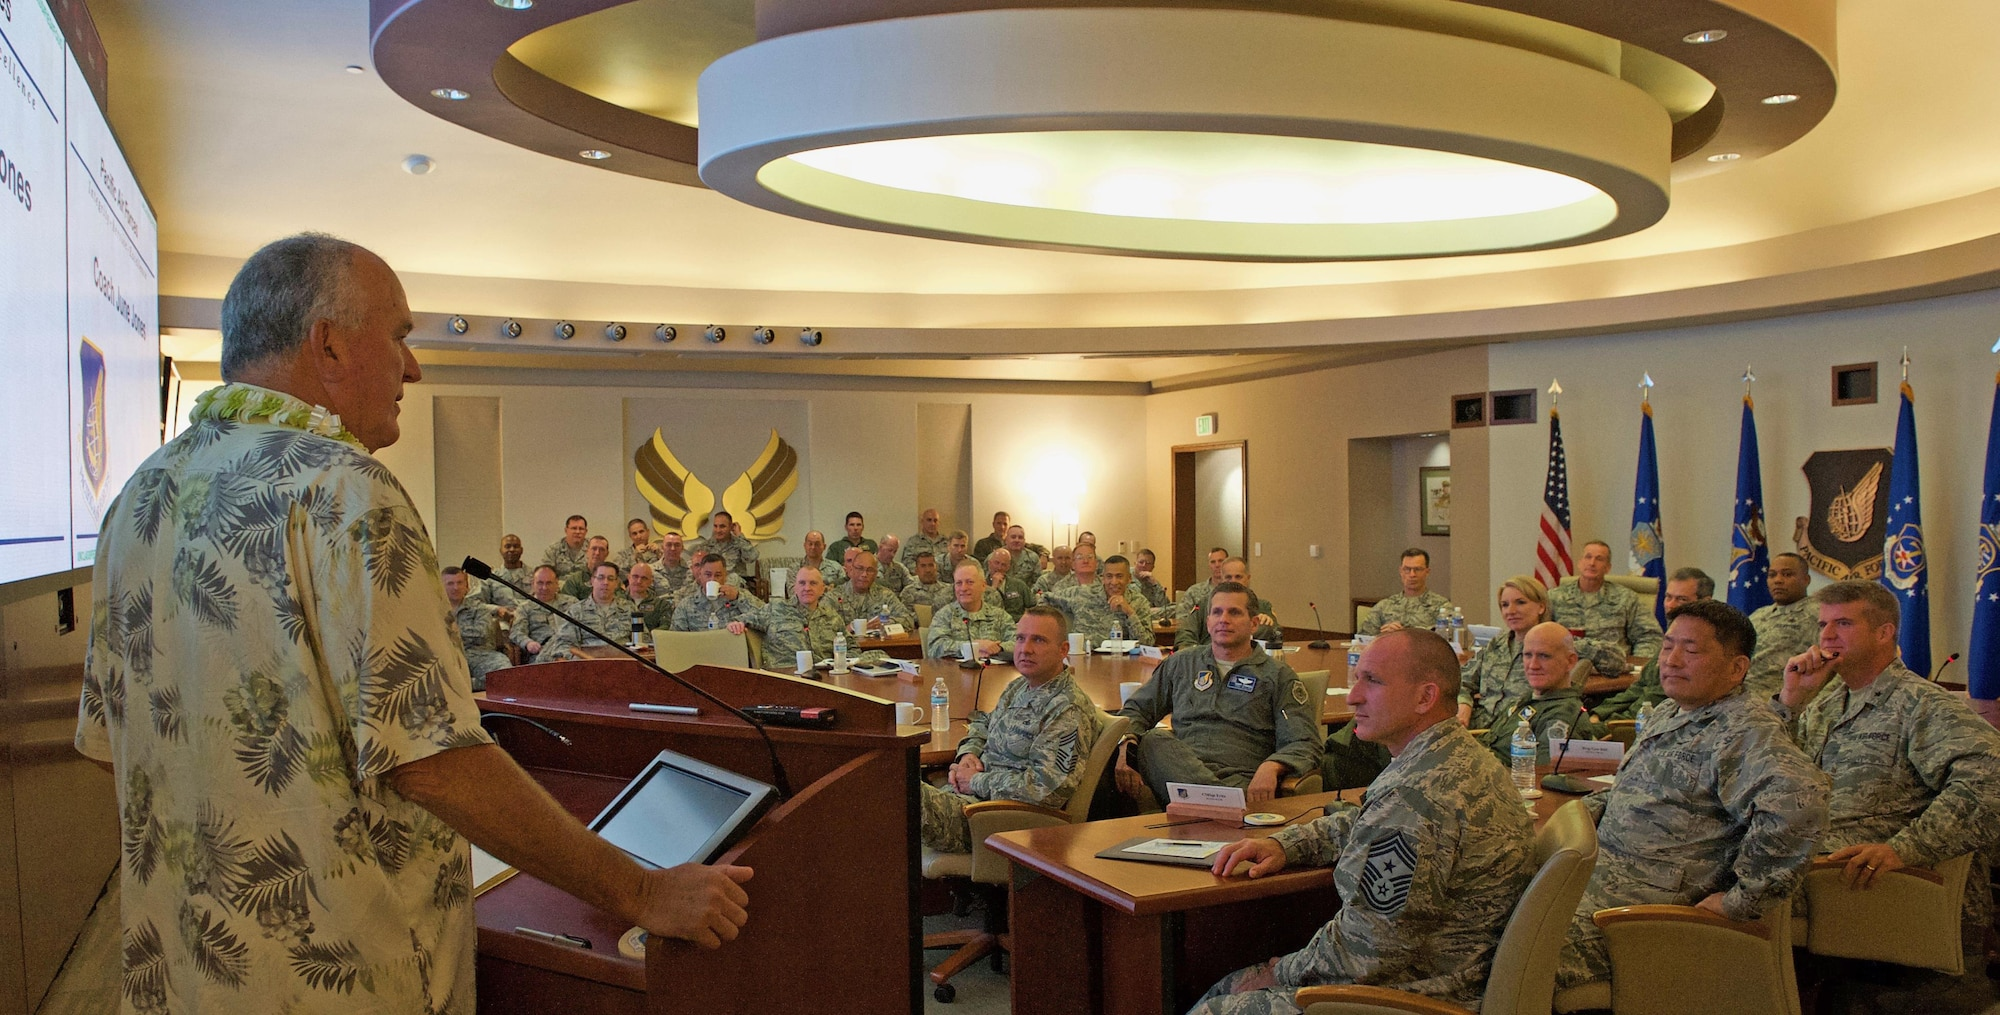 Former University of Hawaii (UH) head football coach June Jones speaks with Pacific Air Forces (PACAF) senior leaders during the PACAF hosted commander's conference at Joint Base Pearl Harbor-Hickam, Hawaii, April 26, 2017. At UH, Jones guided the Rainbow Warriors to what was the biggest single-season turnaround in NCAA history, taking a program that had gone 0-12 before his arrival to 9-4 in 1999, leaving the school as the winningest head coach with a 76-41 record over nine seasons. The three-day conference included a wide variety of topics and several guest speakers, preparing leaders in PACAF to remain poised to retain a competitive advantage in the evolving Pacific theater. (U.S. Air Force photo by Tech. Sgt. Kamaile Chan)